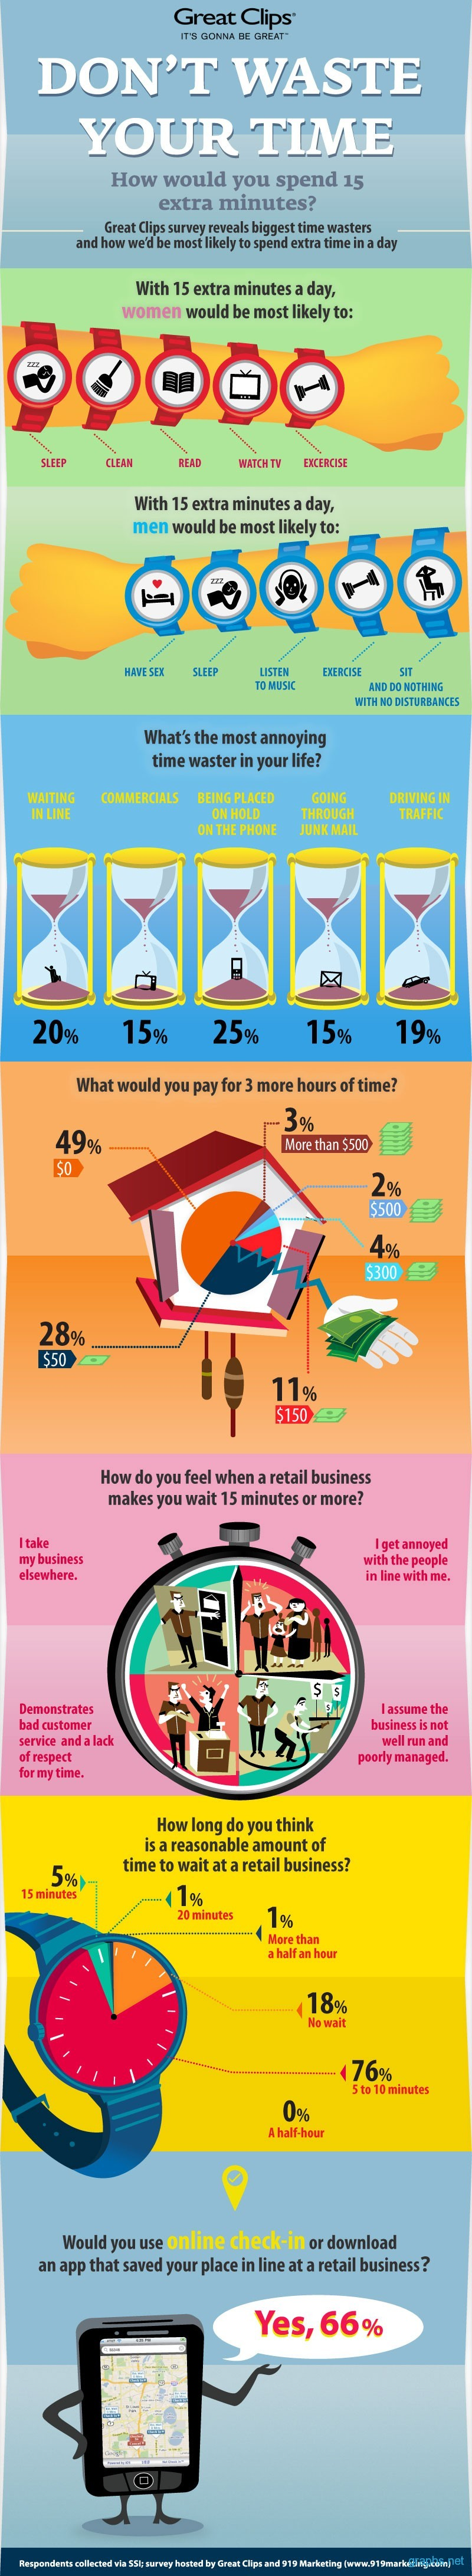 How Would You Spend Your Extra 15 Minutes?